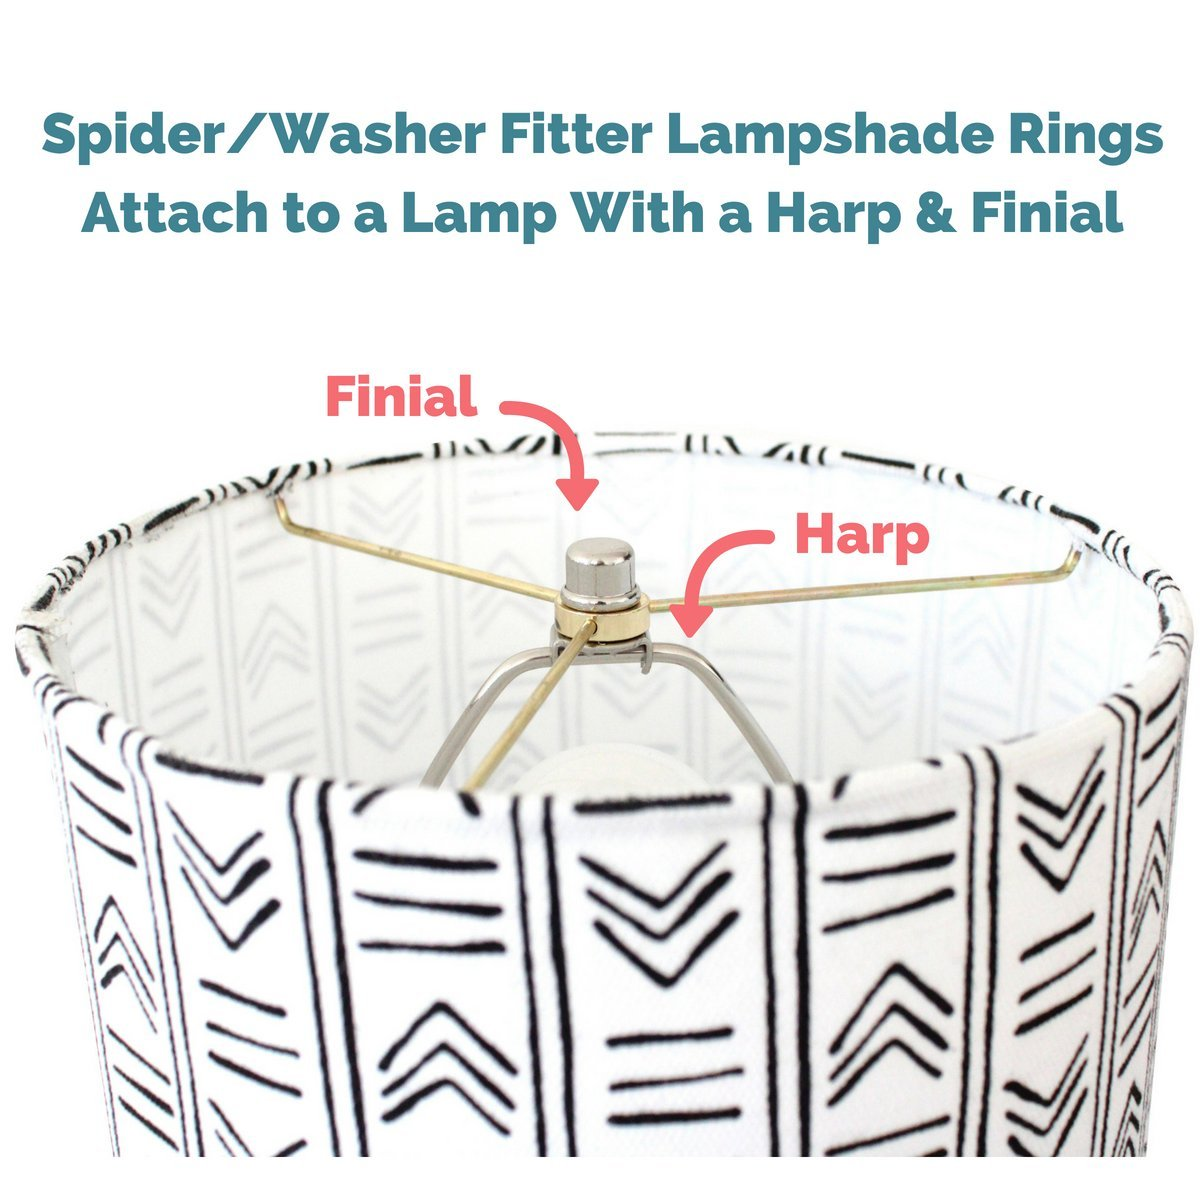 Lamp Shade Ring Set to Make a DIY Drum Ring Lamp Shade - US Style Spider Fitter That Connects to Lamp Harps - Strong Galvanized Steel Ring For Lamp Shade - 18 Inch Diameter